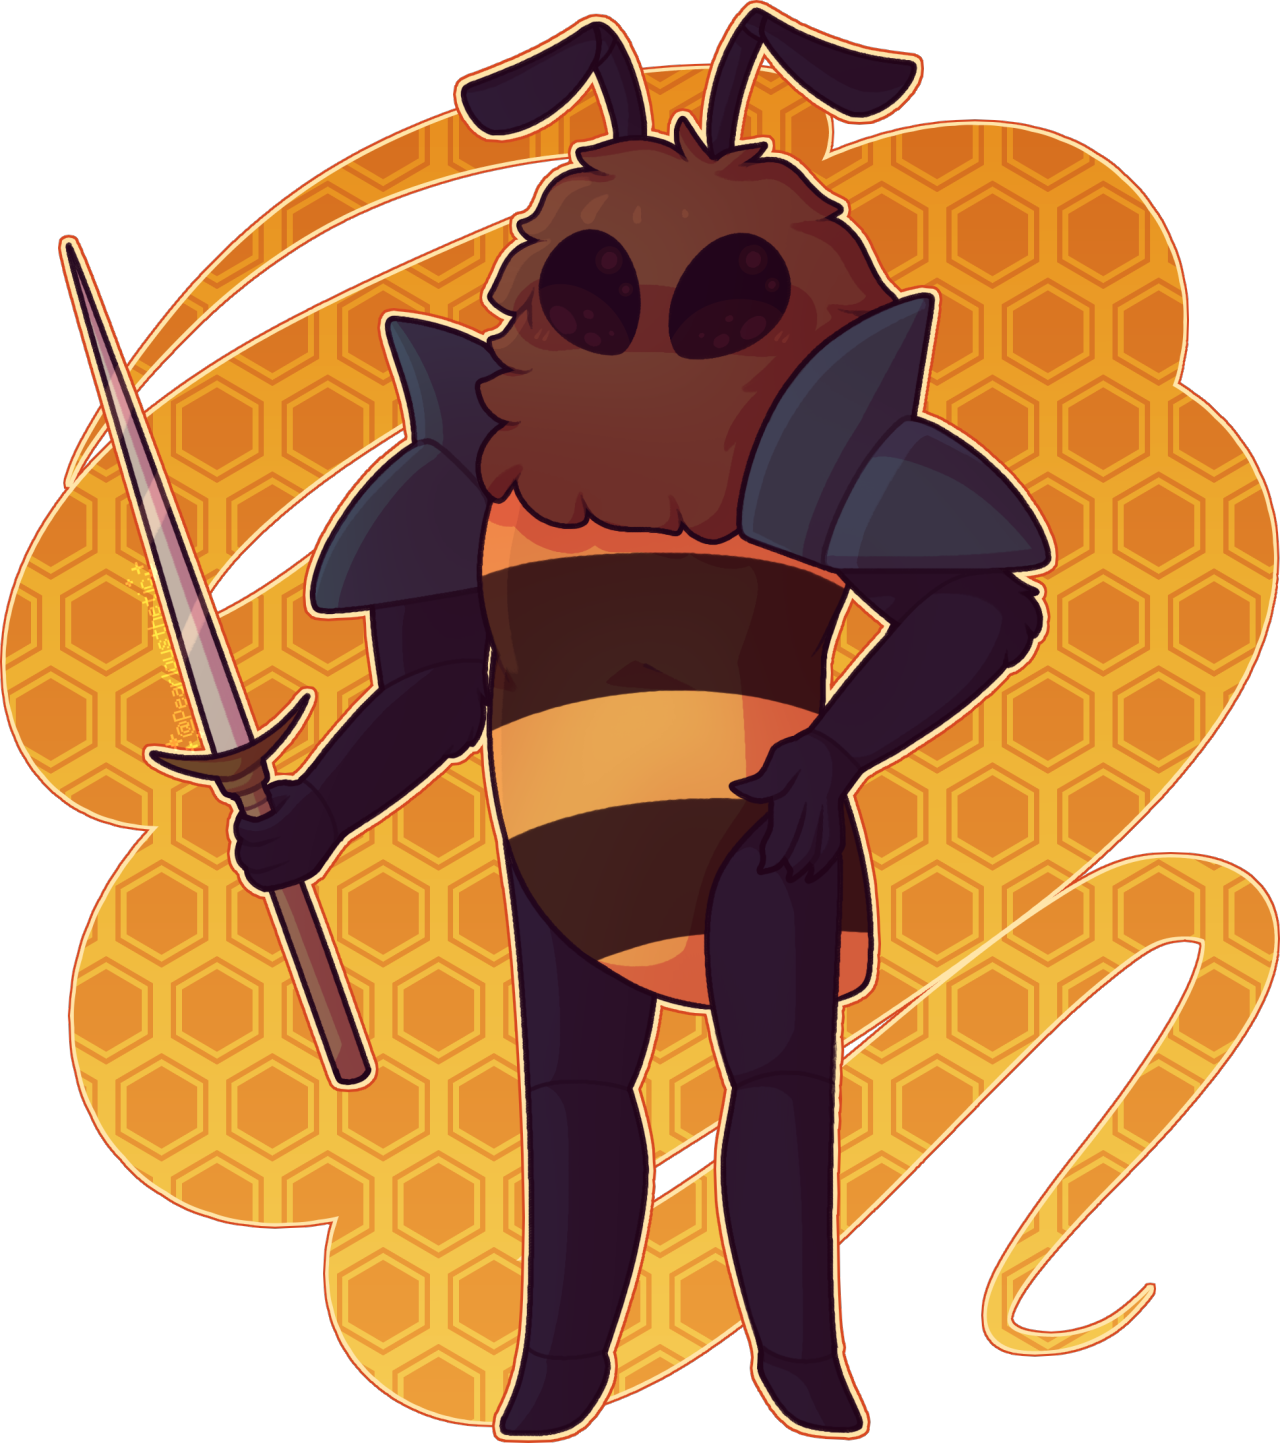 underappreciated bee best friend #hive knight#hollow knight#bee#fanart#hk#the hive#bug#insect#digital art #i just think hes really cute  #ive wanted to learn how to draw him for a while and i think i did good here!  #plus my gf likes him so that may have influenced my choice too